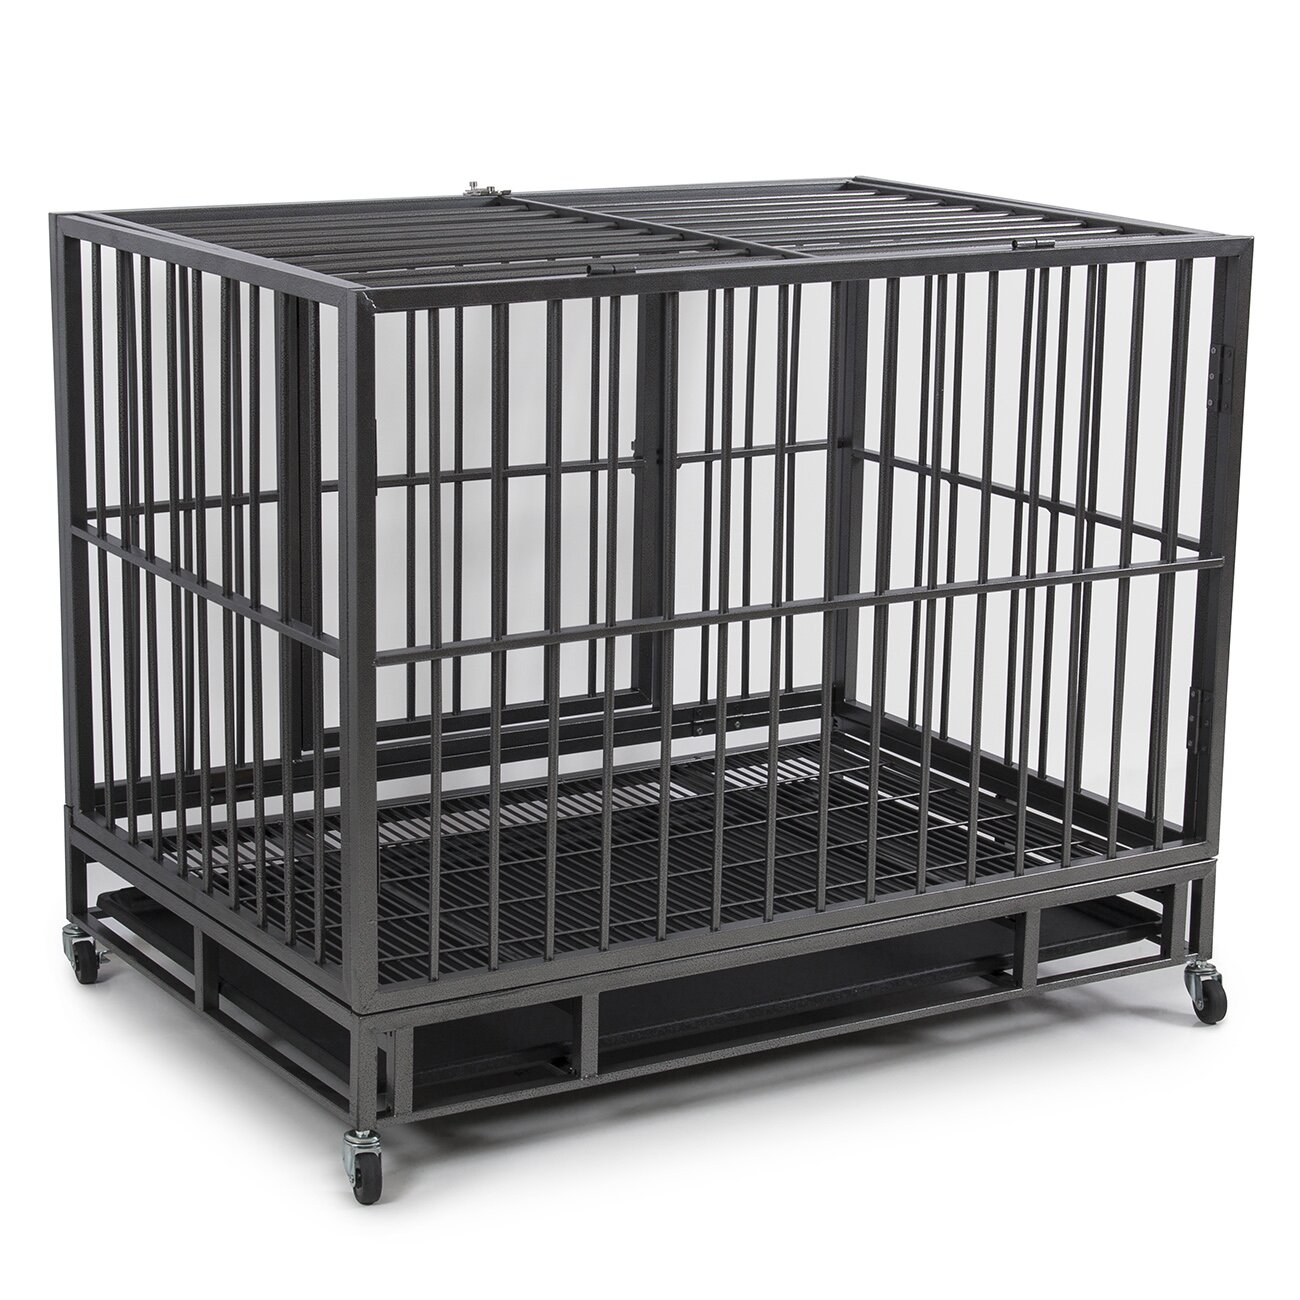 Dog Kennel Heavy Duty Pet Crate By Fur Family